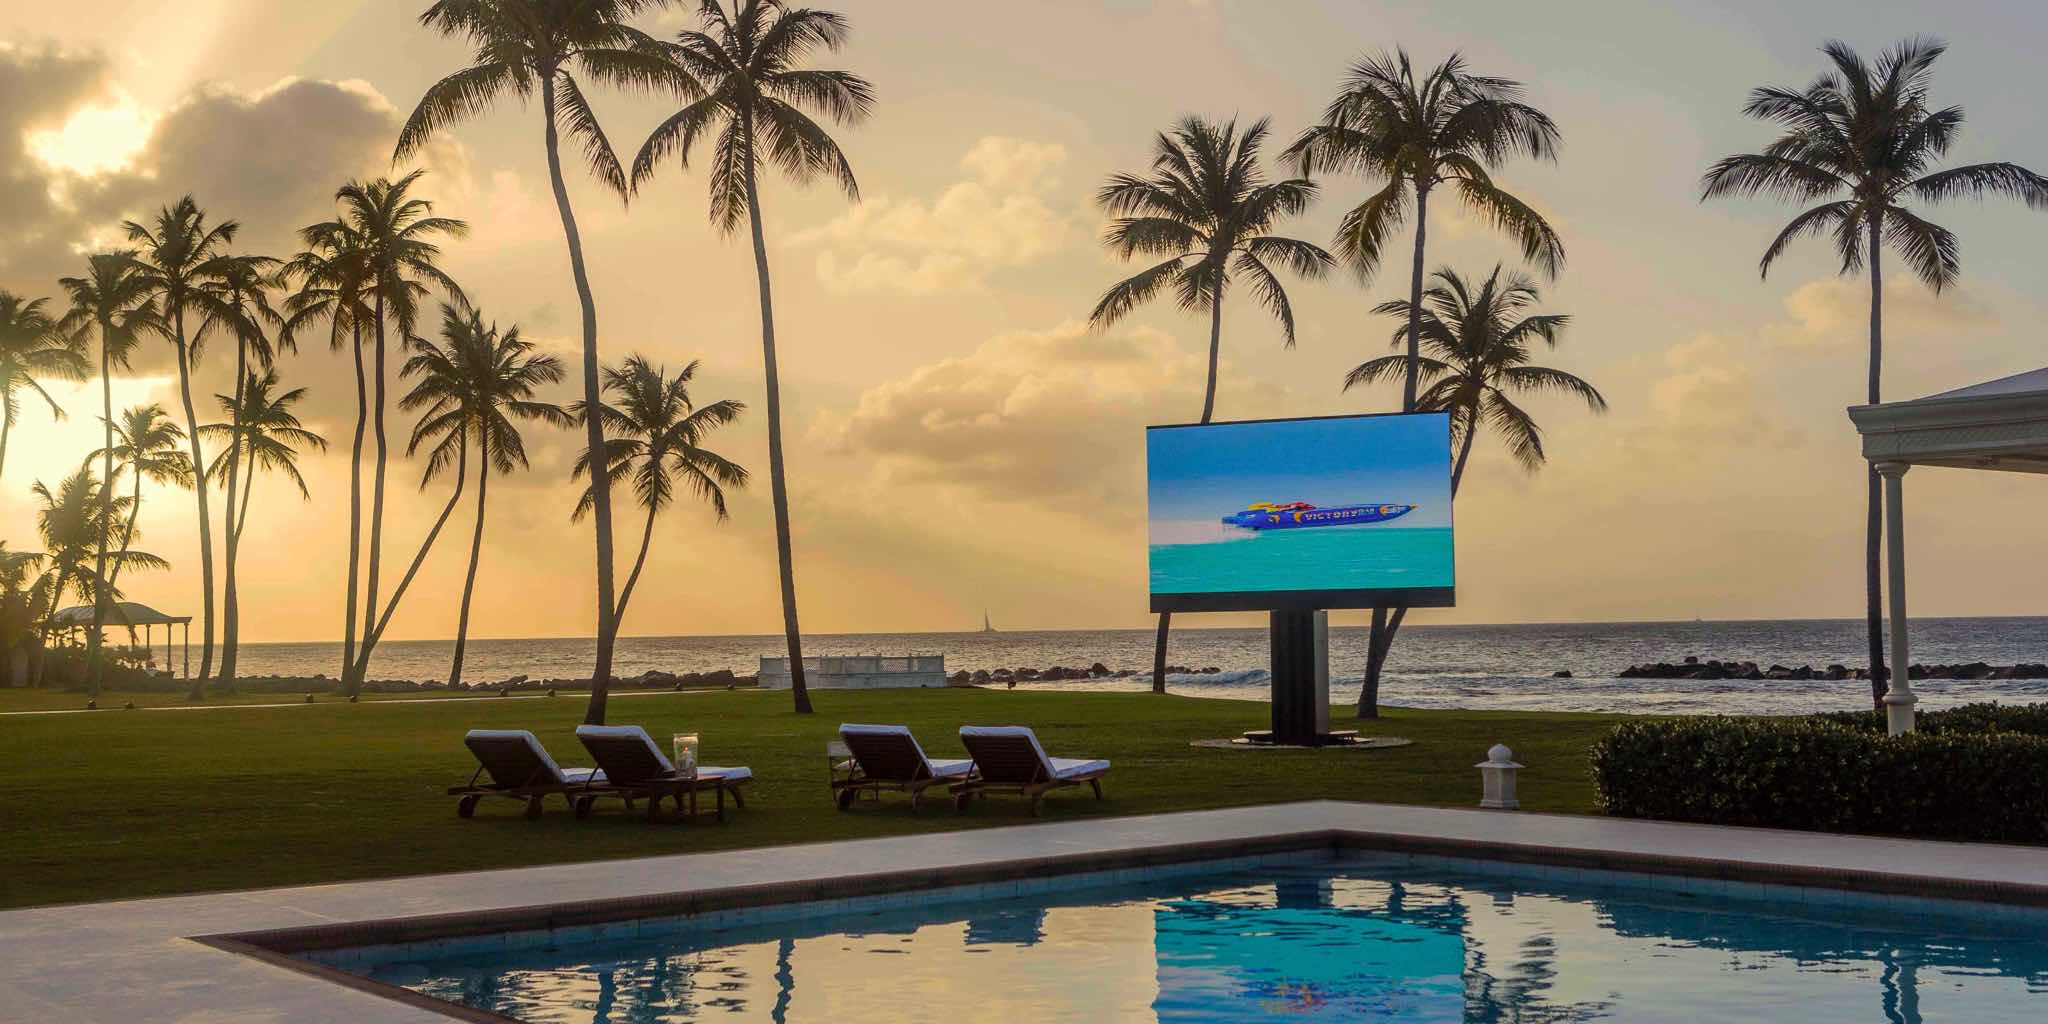 Sales, installation, and integration of C SEED 201 Giant Outdoor LED TV, in the Miami / Fort Lauderdale area. Available at dmg Martinez Group.